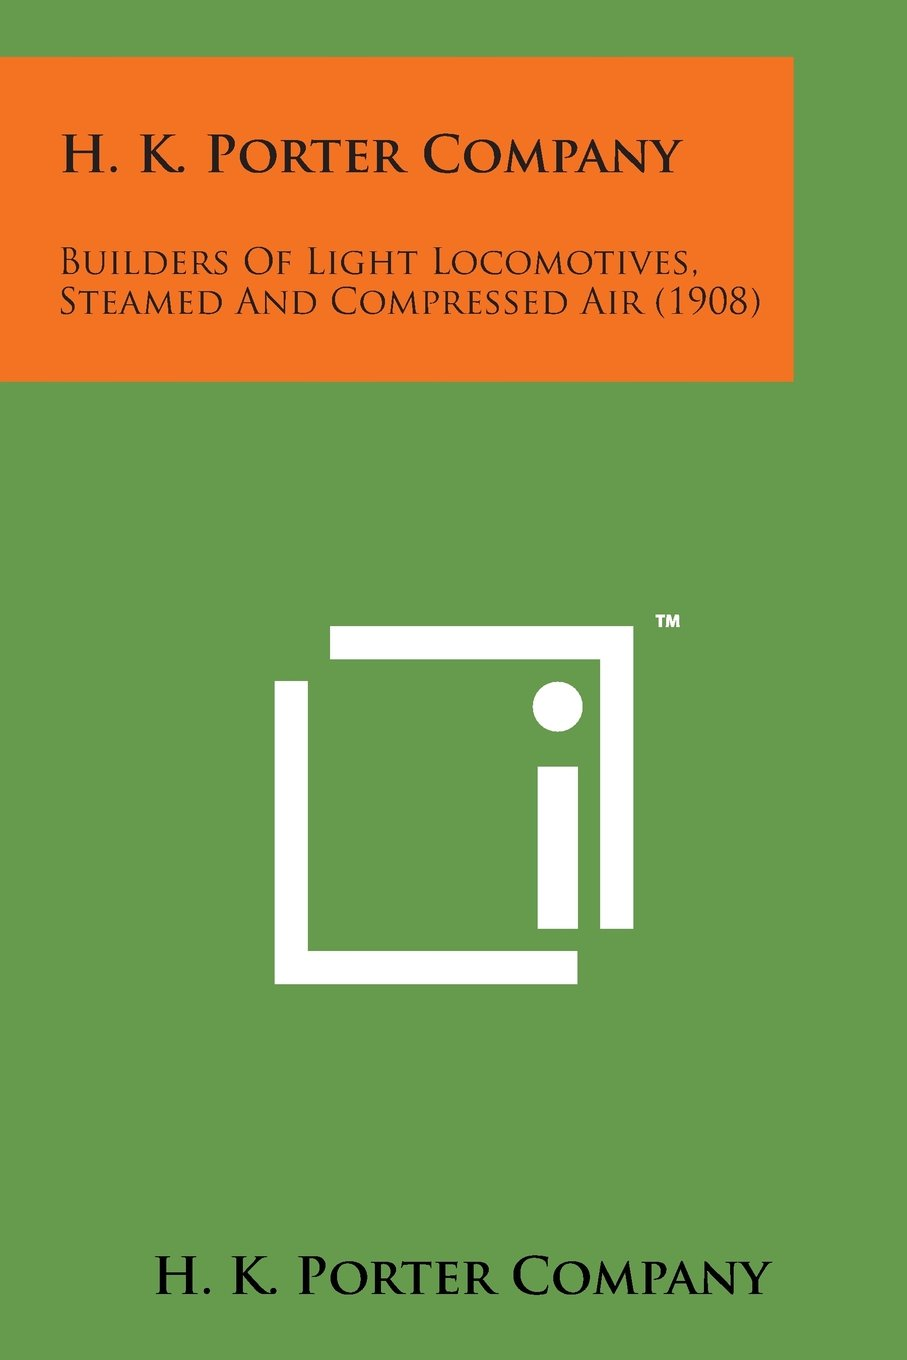 Download H. K. Porter Company: Builders of Light Locomotives, Steamed and Compressed Air (1908) pdf epub